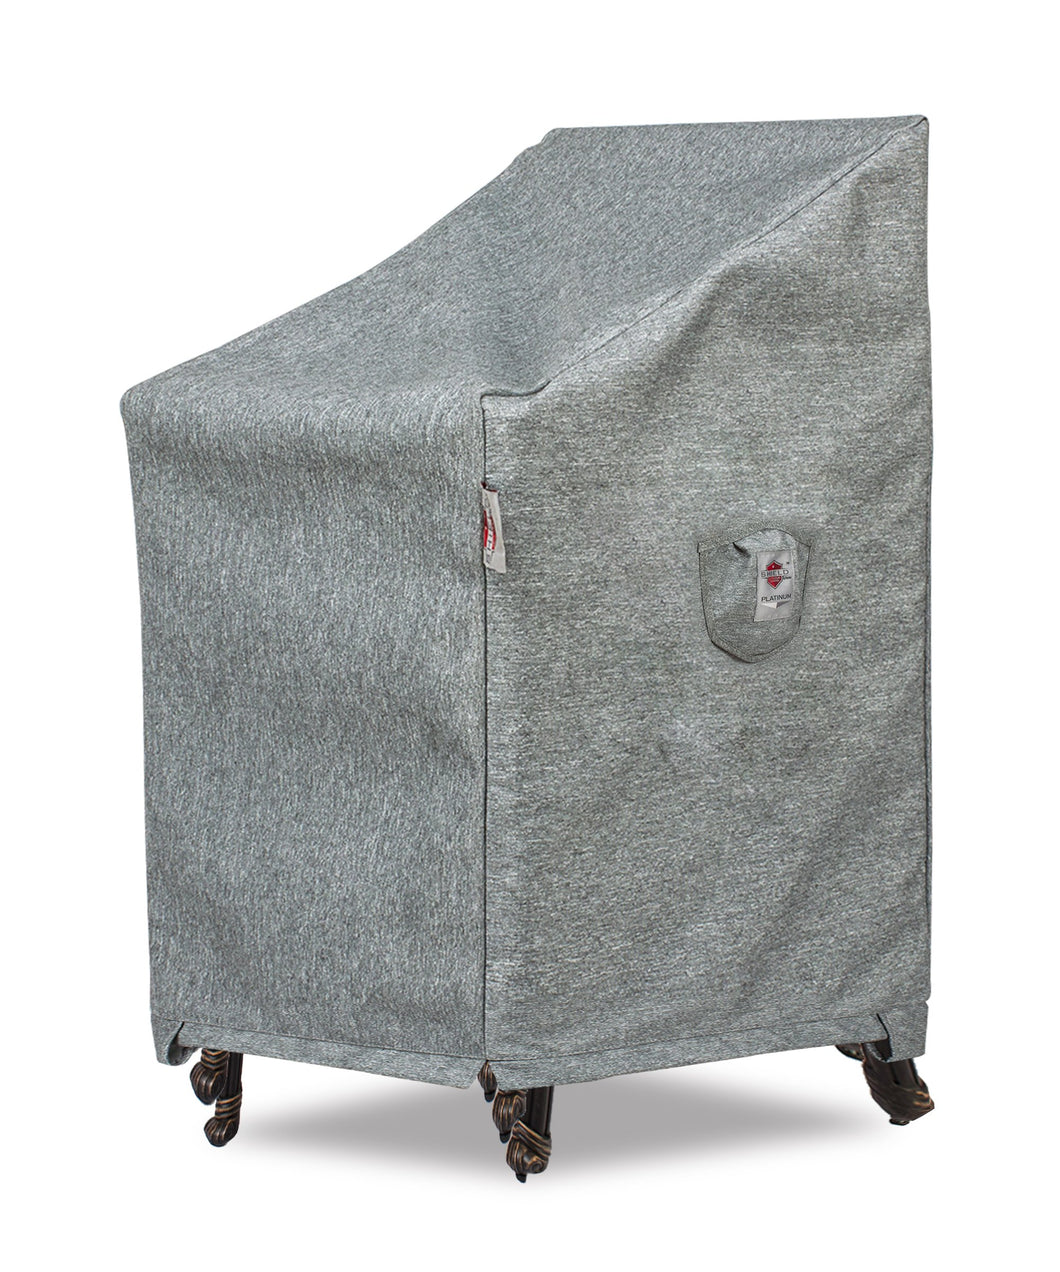 Chair Cover Small - 25.5